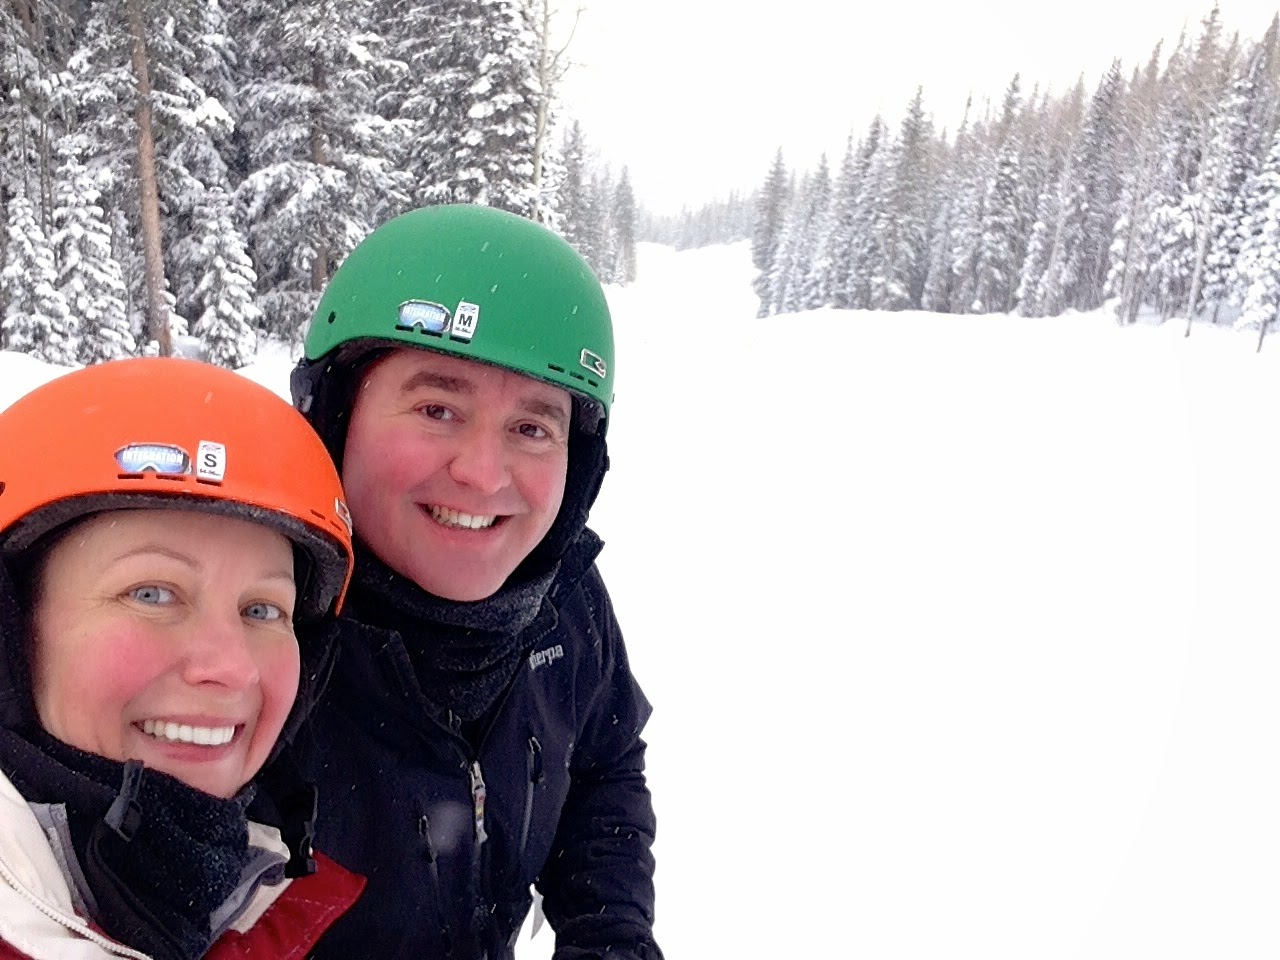 Kate and Brian on the slopes in Powderhorn